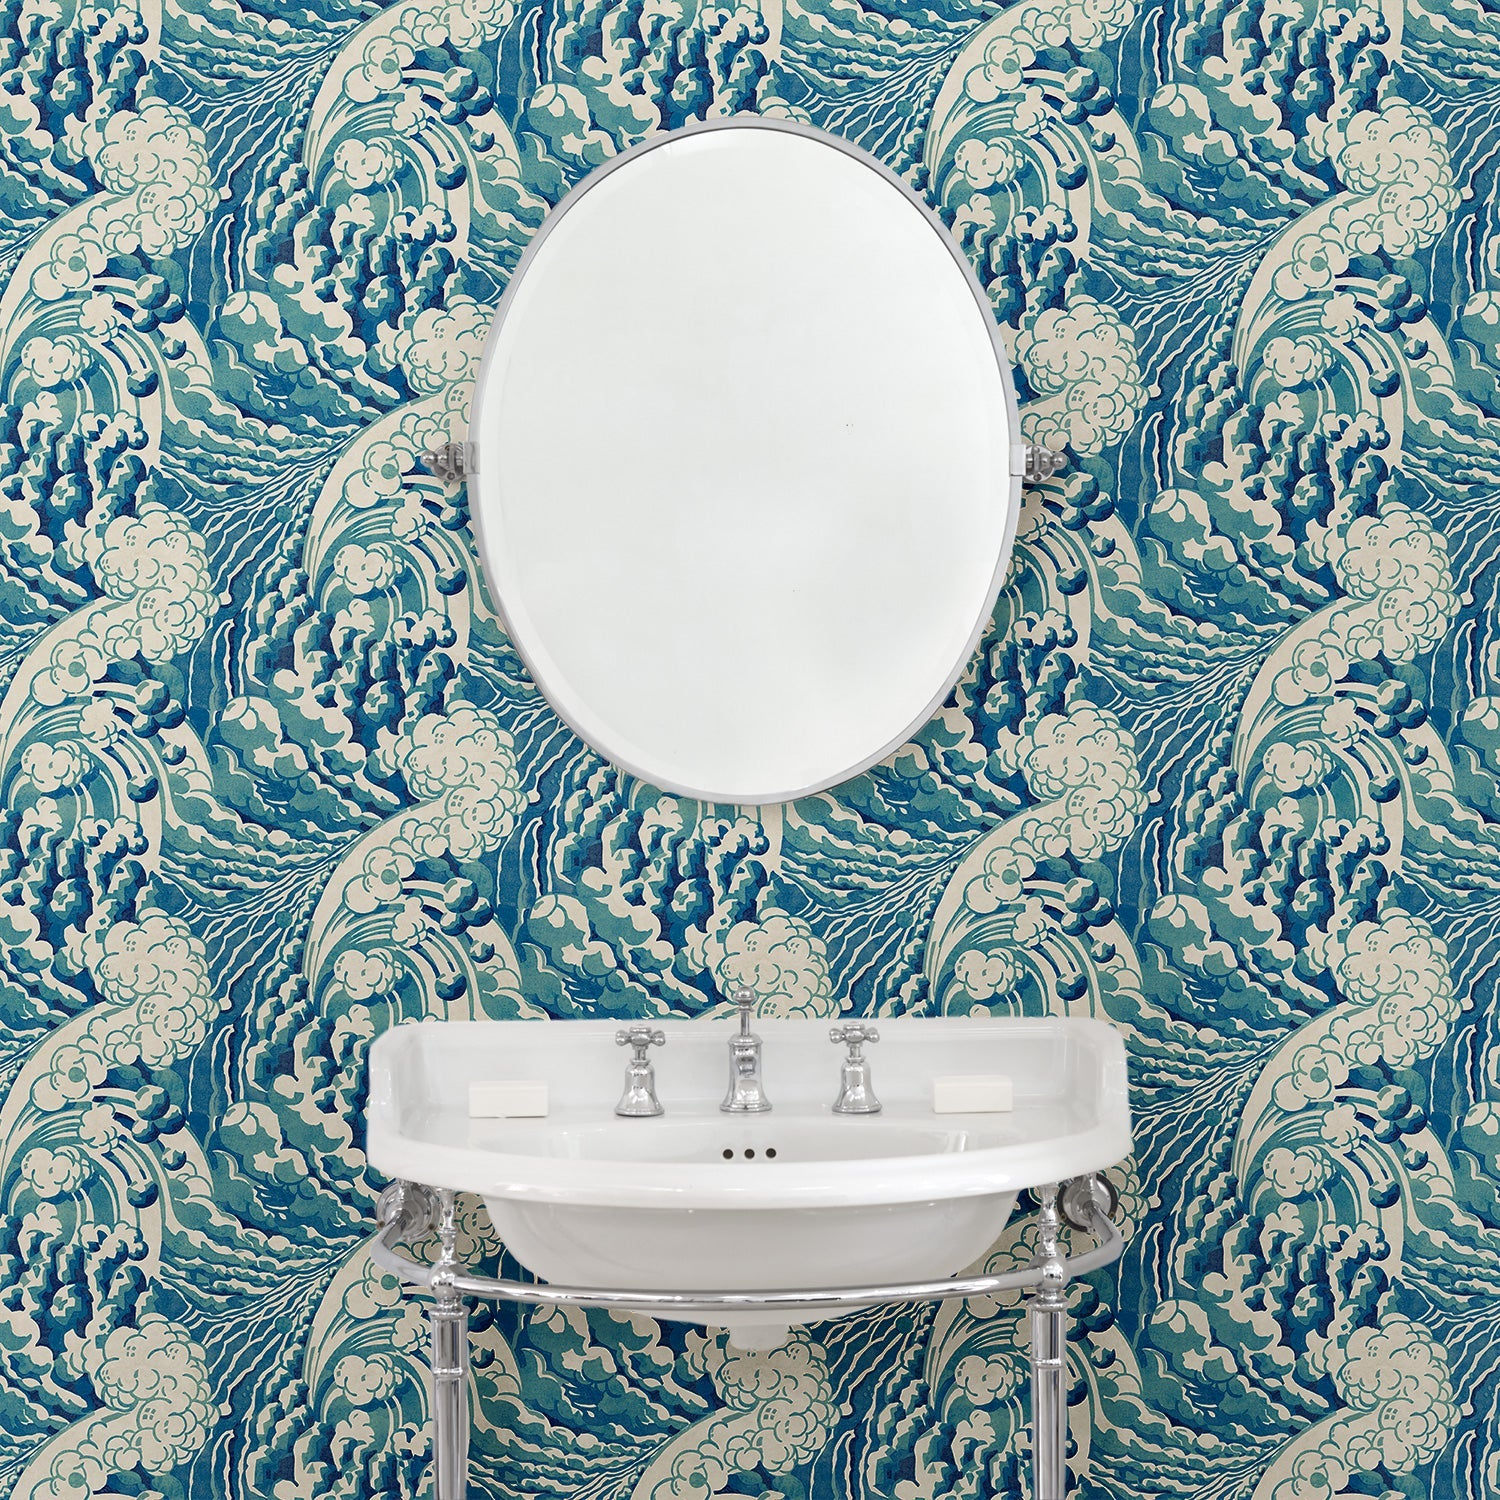 Bathroom featuring a luxury designer wallpaper with a Hokusai-inspired wave design